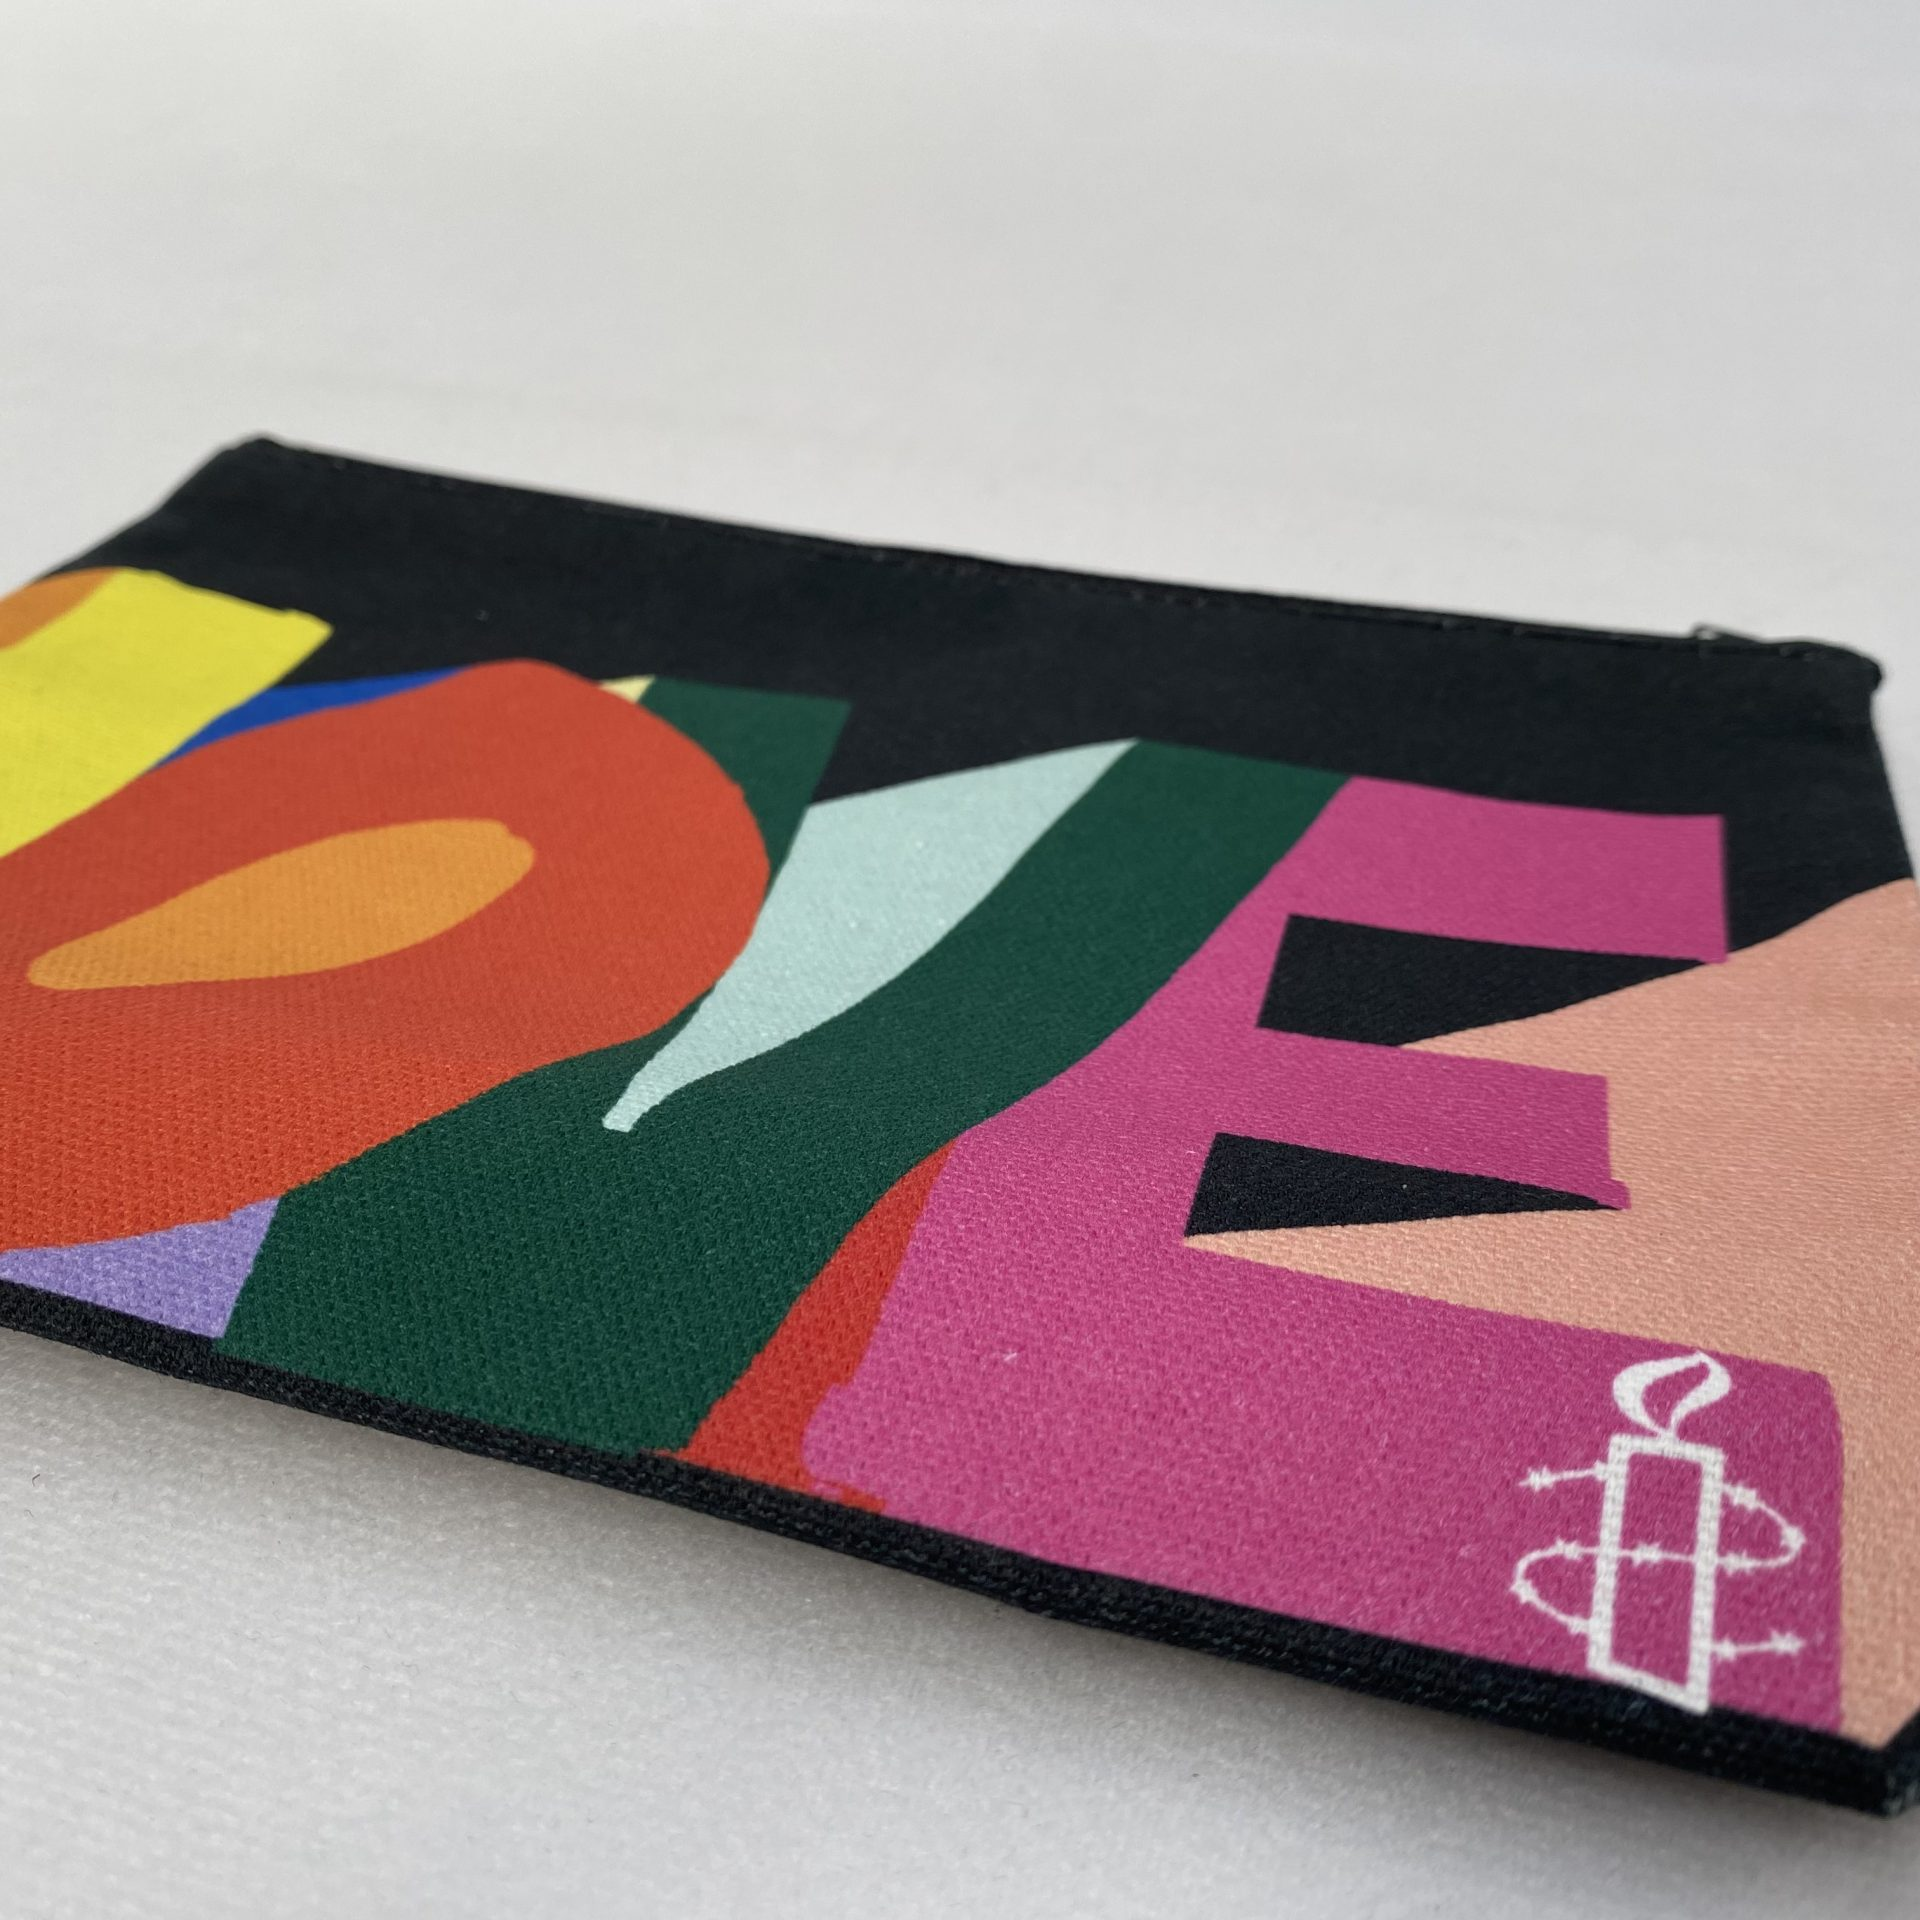 Printed promotional purse